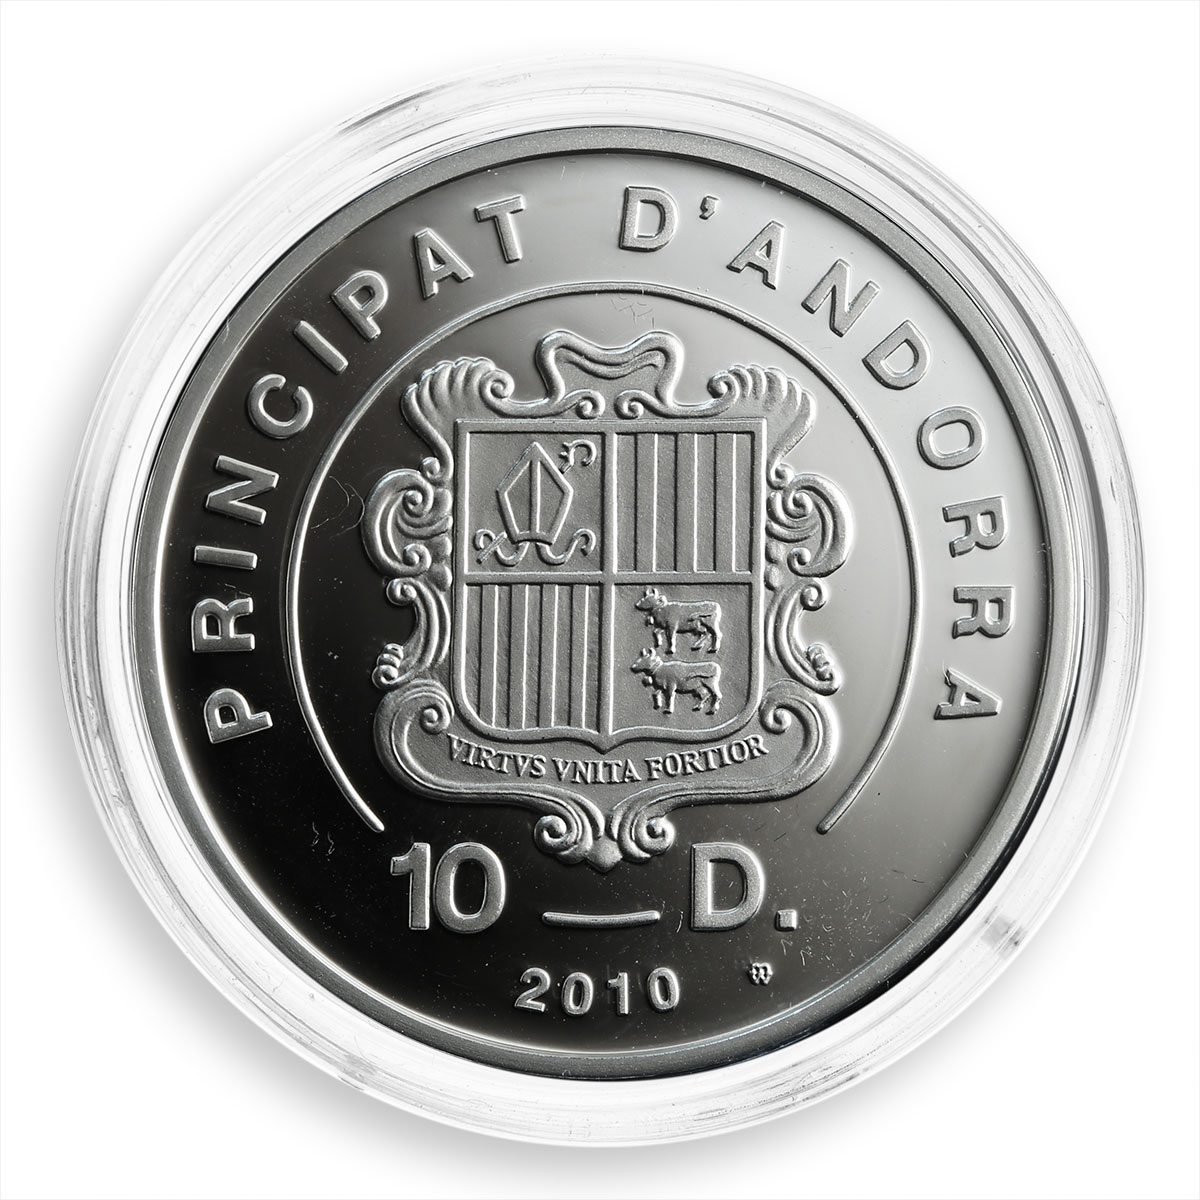 Andorra, 10 dinars, Holy Helpers, St. Catherine, silver Proof coin, 2010